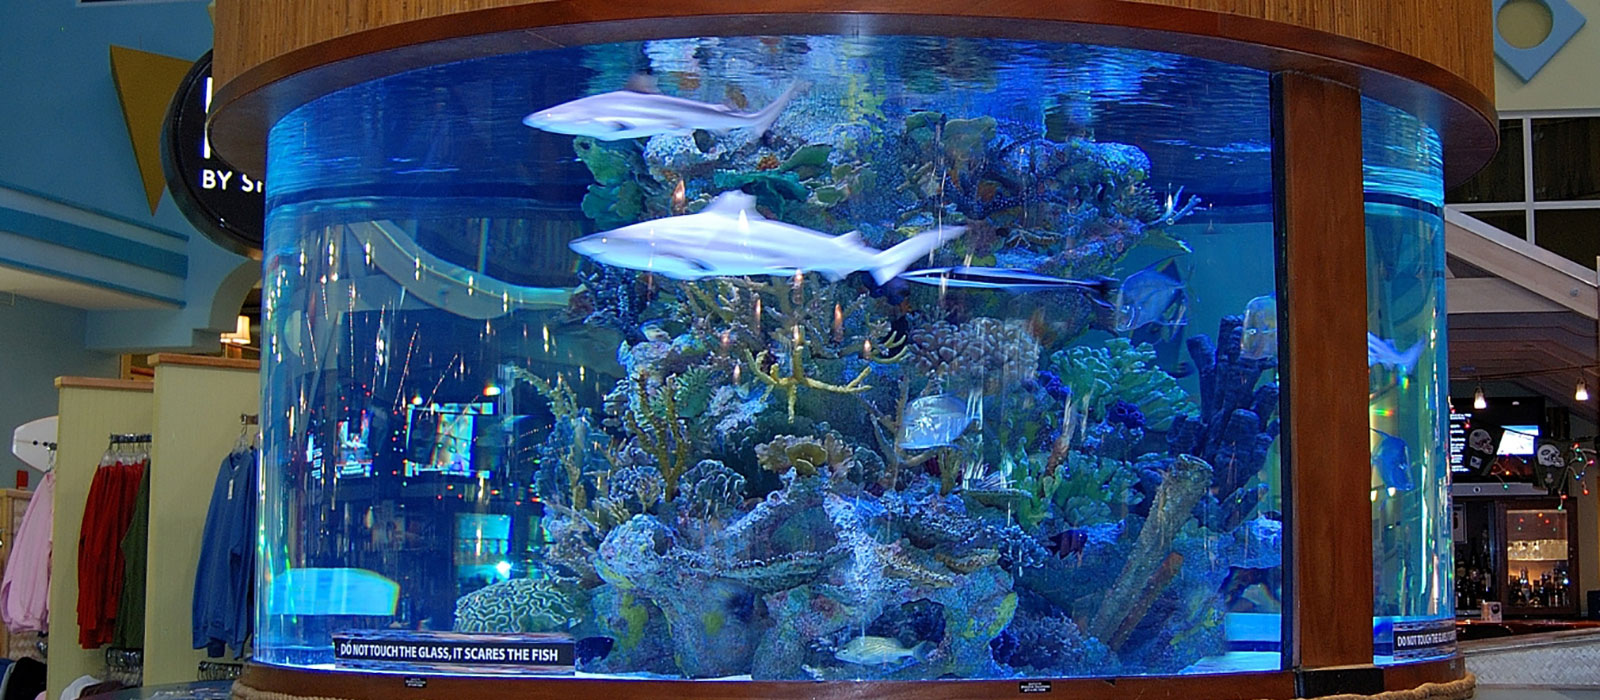 custom aquariums reef tanks aquarium start up service custom aquarium cabinet stand design. Black Bedroom Furniture Sets. Home Design Ideas